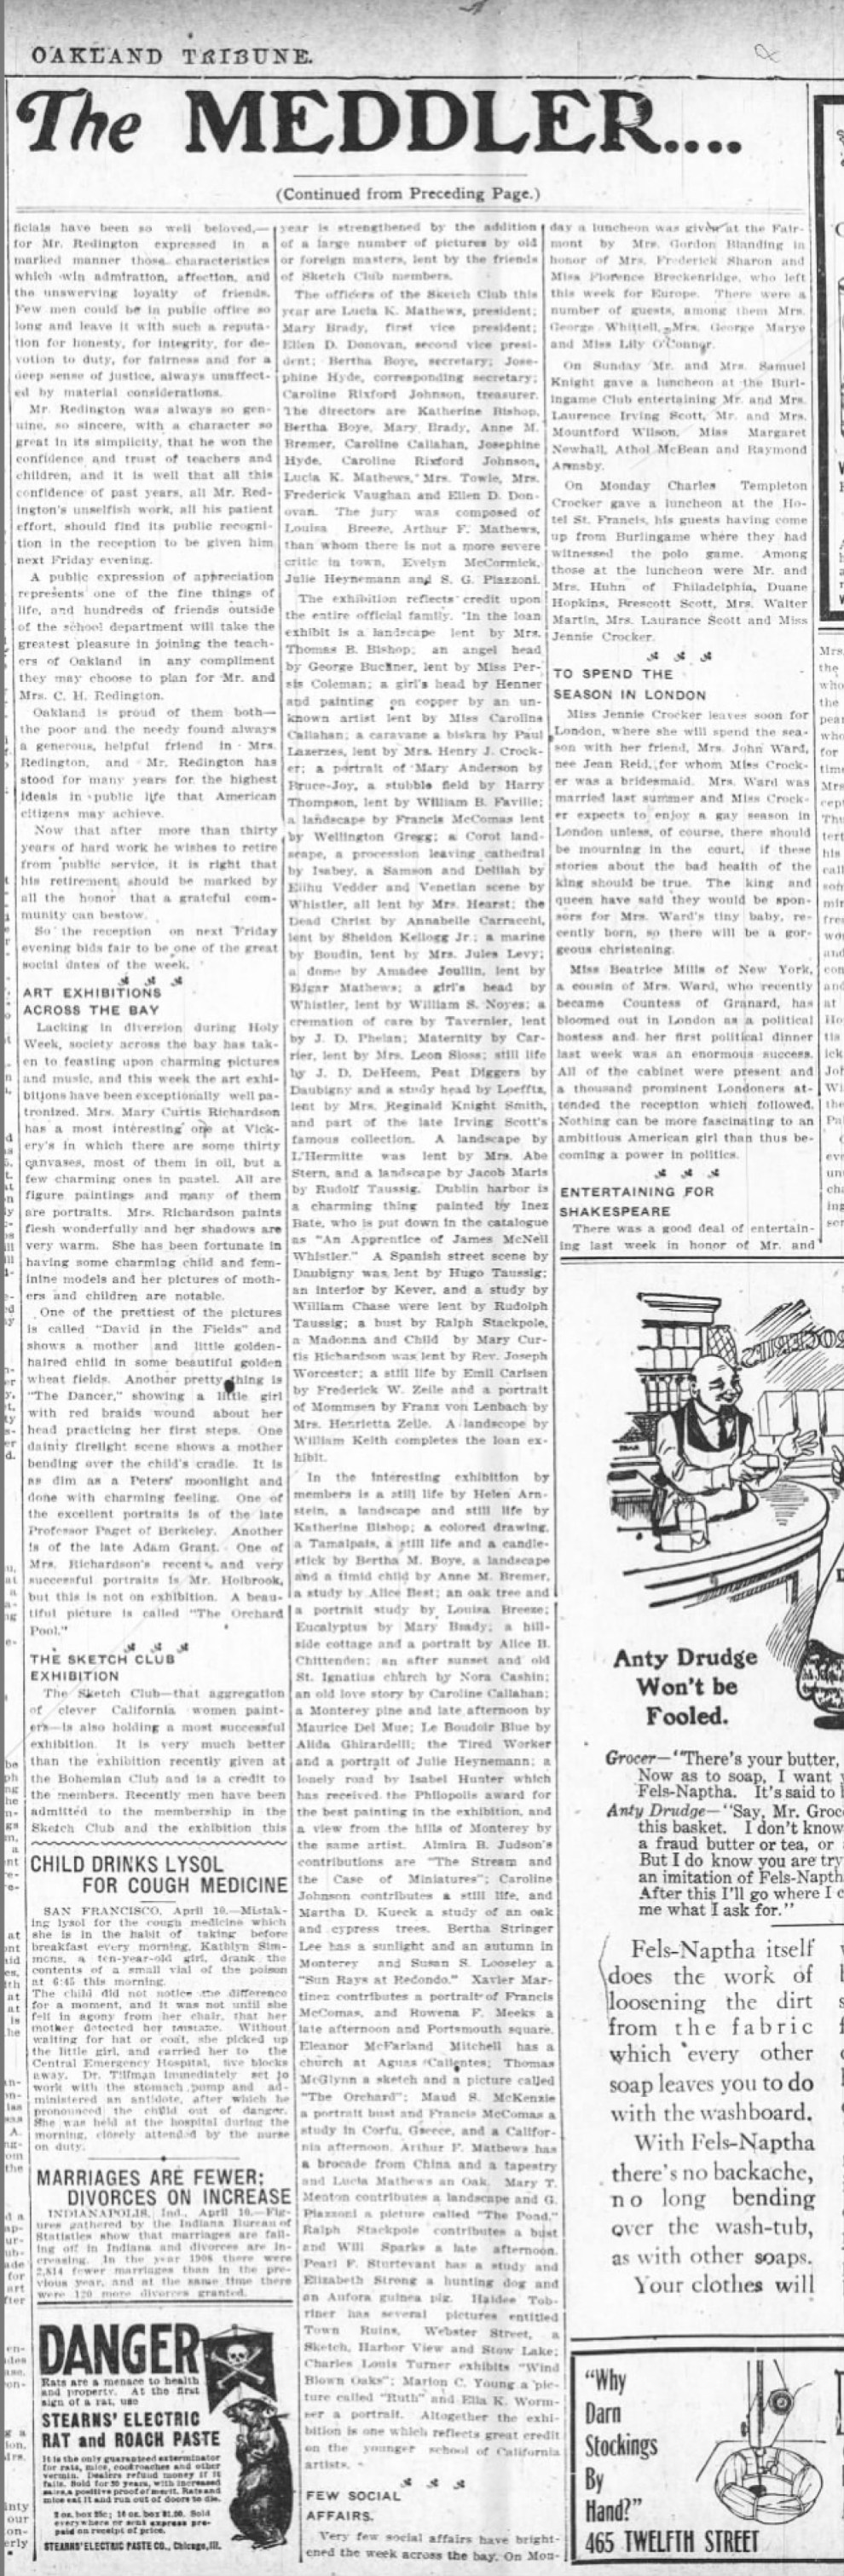 """Oakland Tribune, Oakland, CA, """"The meddler... : the sketch club exhibition"""", Saturday, April 10, 1909, page 10, not illustrated."""